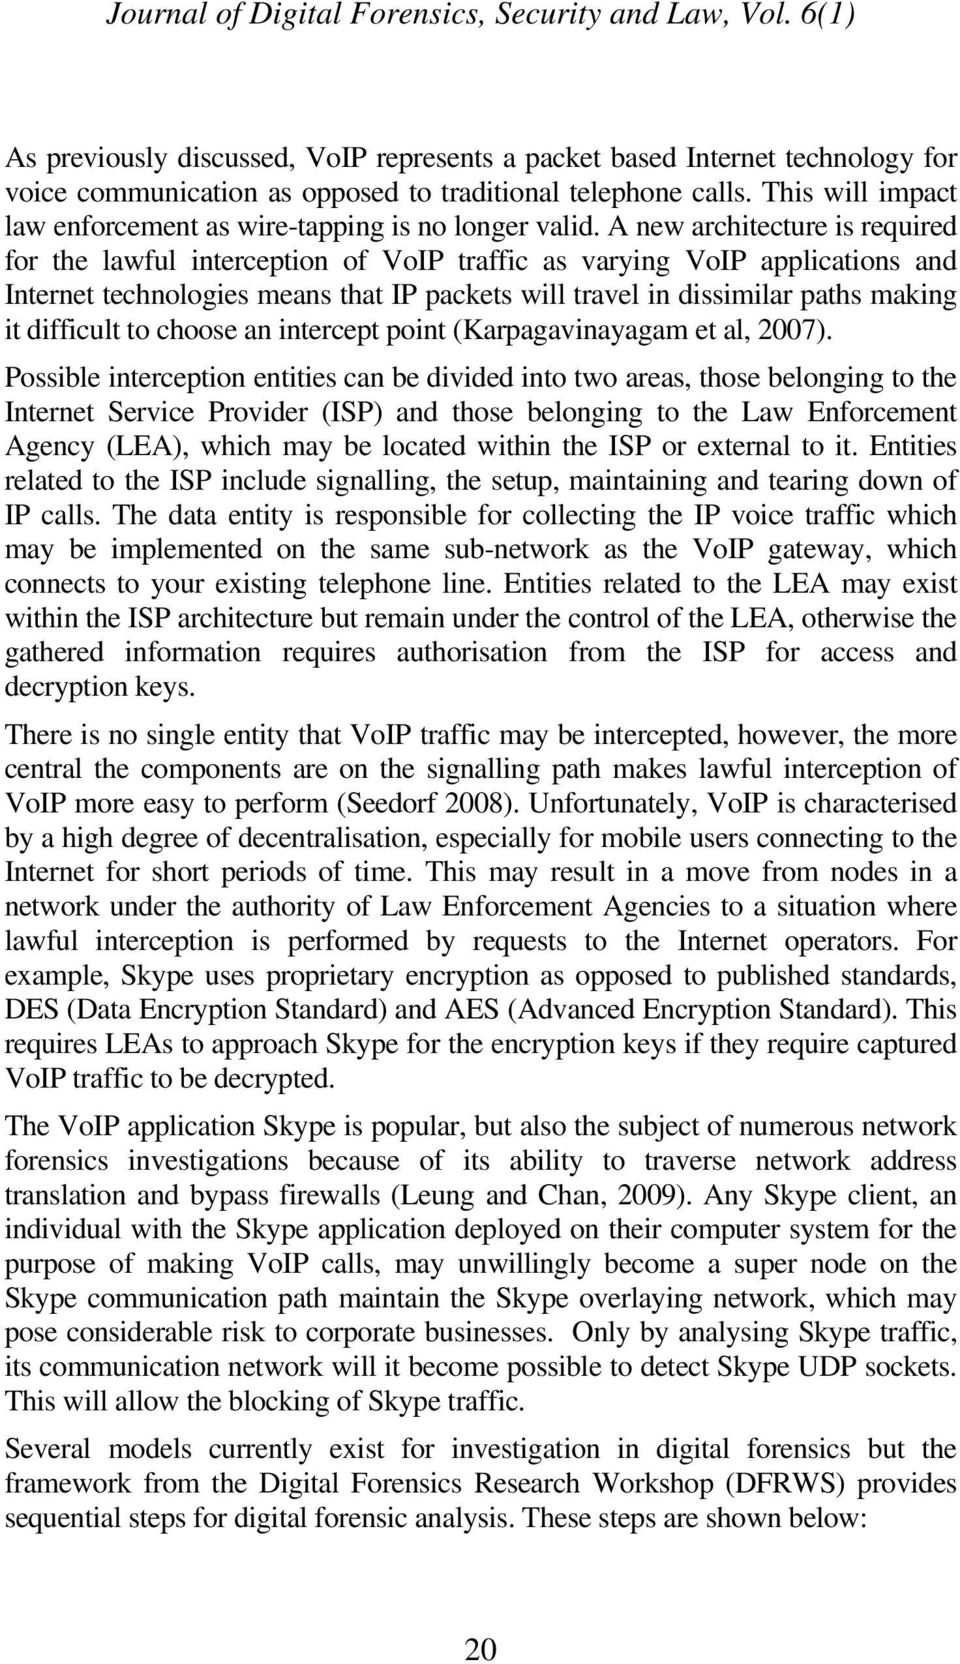 A new architecture is required for the lawful interception of VoIP traffic as varying VoIP applications and Internet technologies means that IP packets will travel in dissimilar paths making it